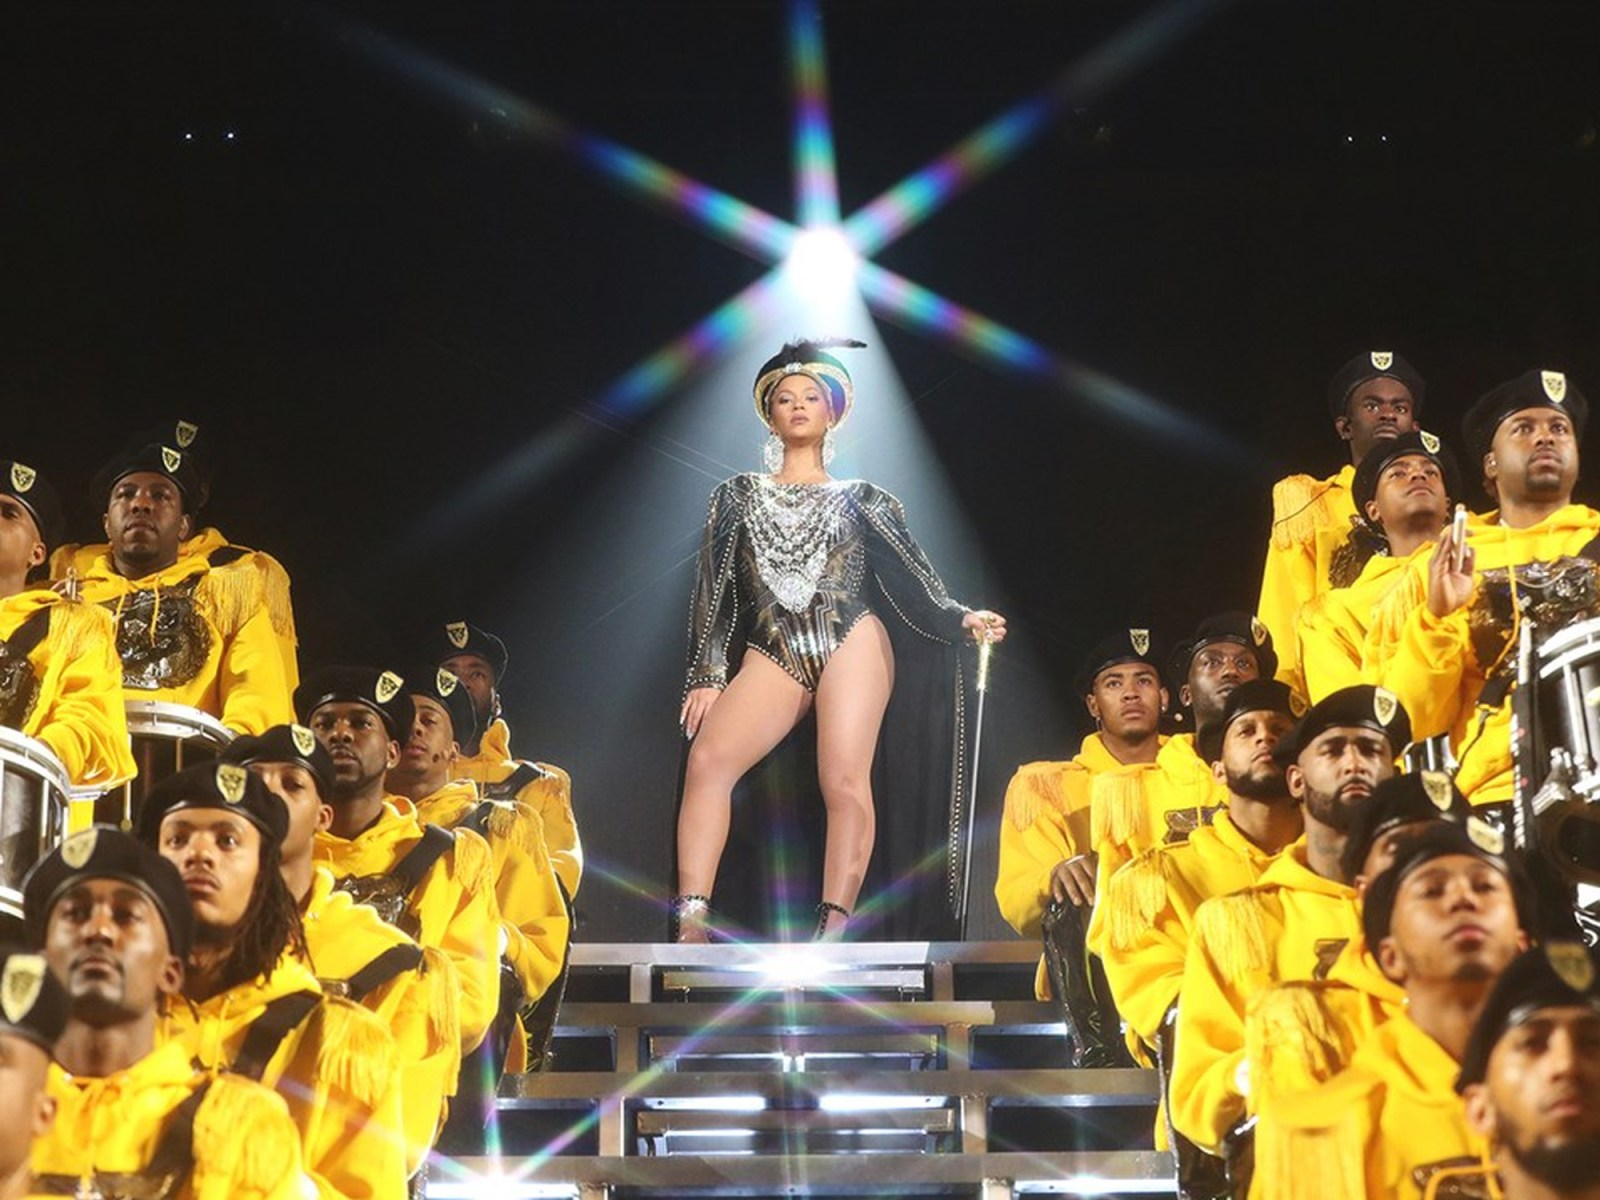 If you're wondering about the Beyonce Coachella performance, then let us be the first or millionth person to tell you that it was amazing. Here's a quick recap in case you missed it.